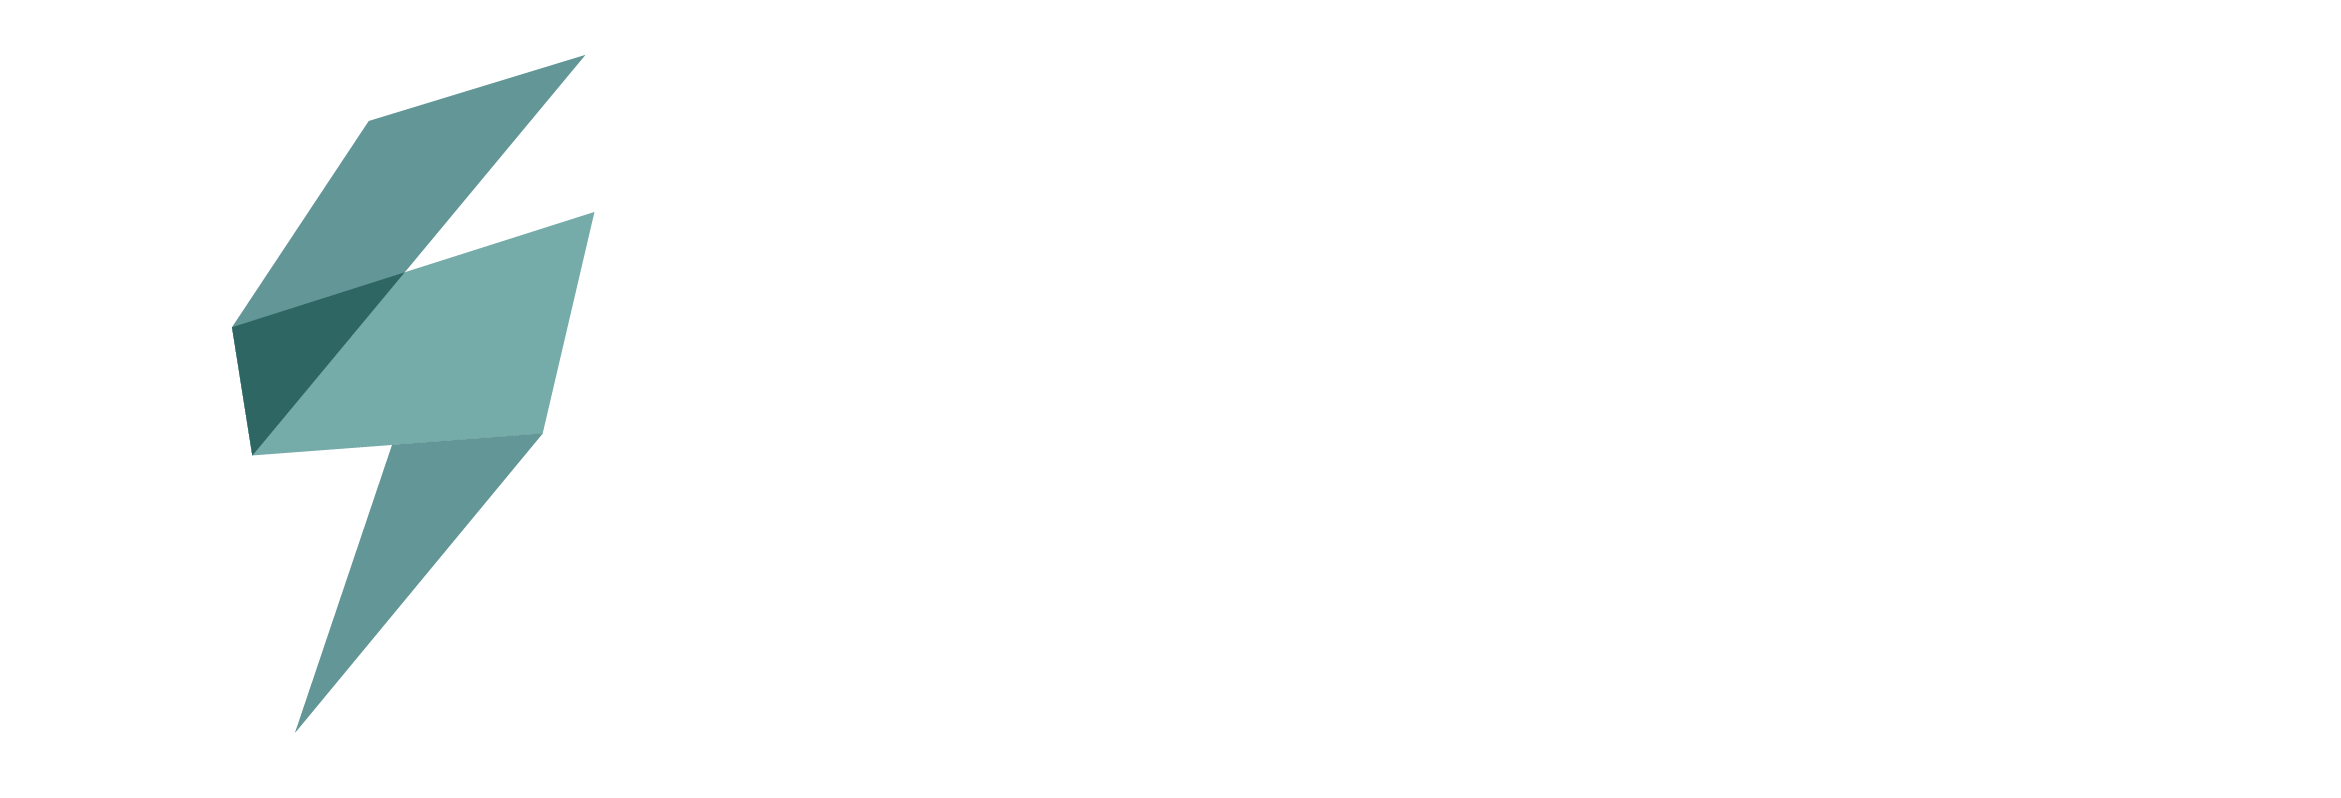 TOUR SERVICE LICHTDESIGN